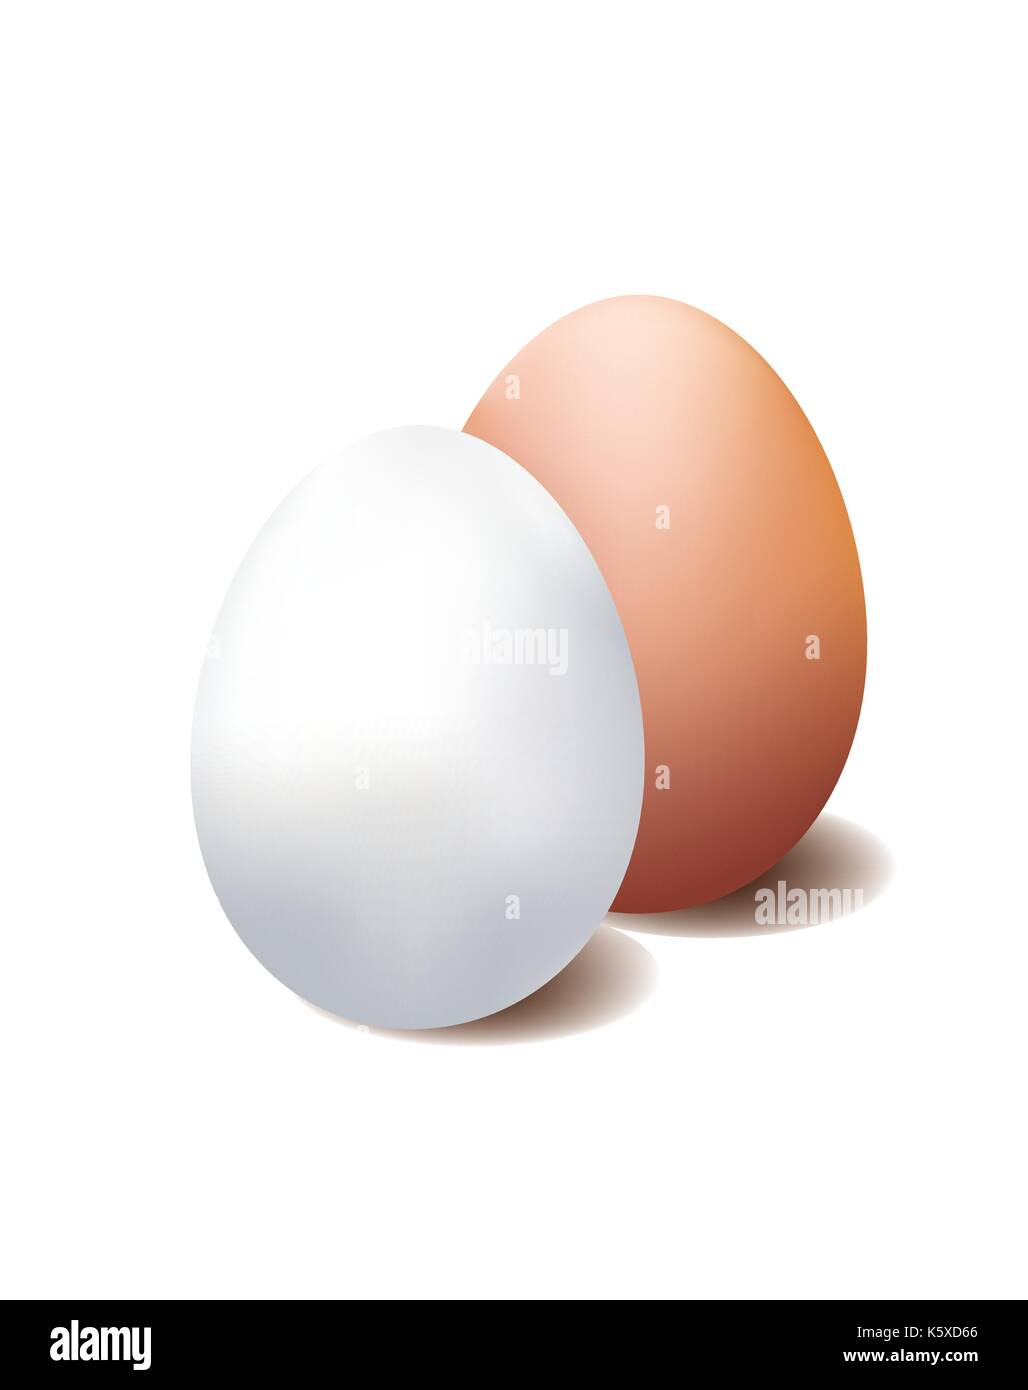 White and brown egg on white background - Stock Image